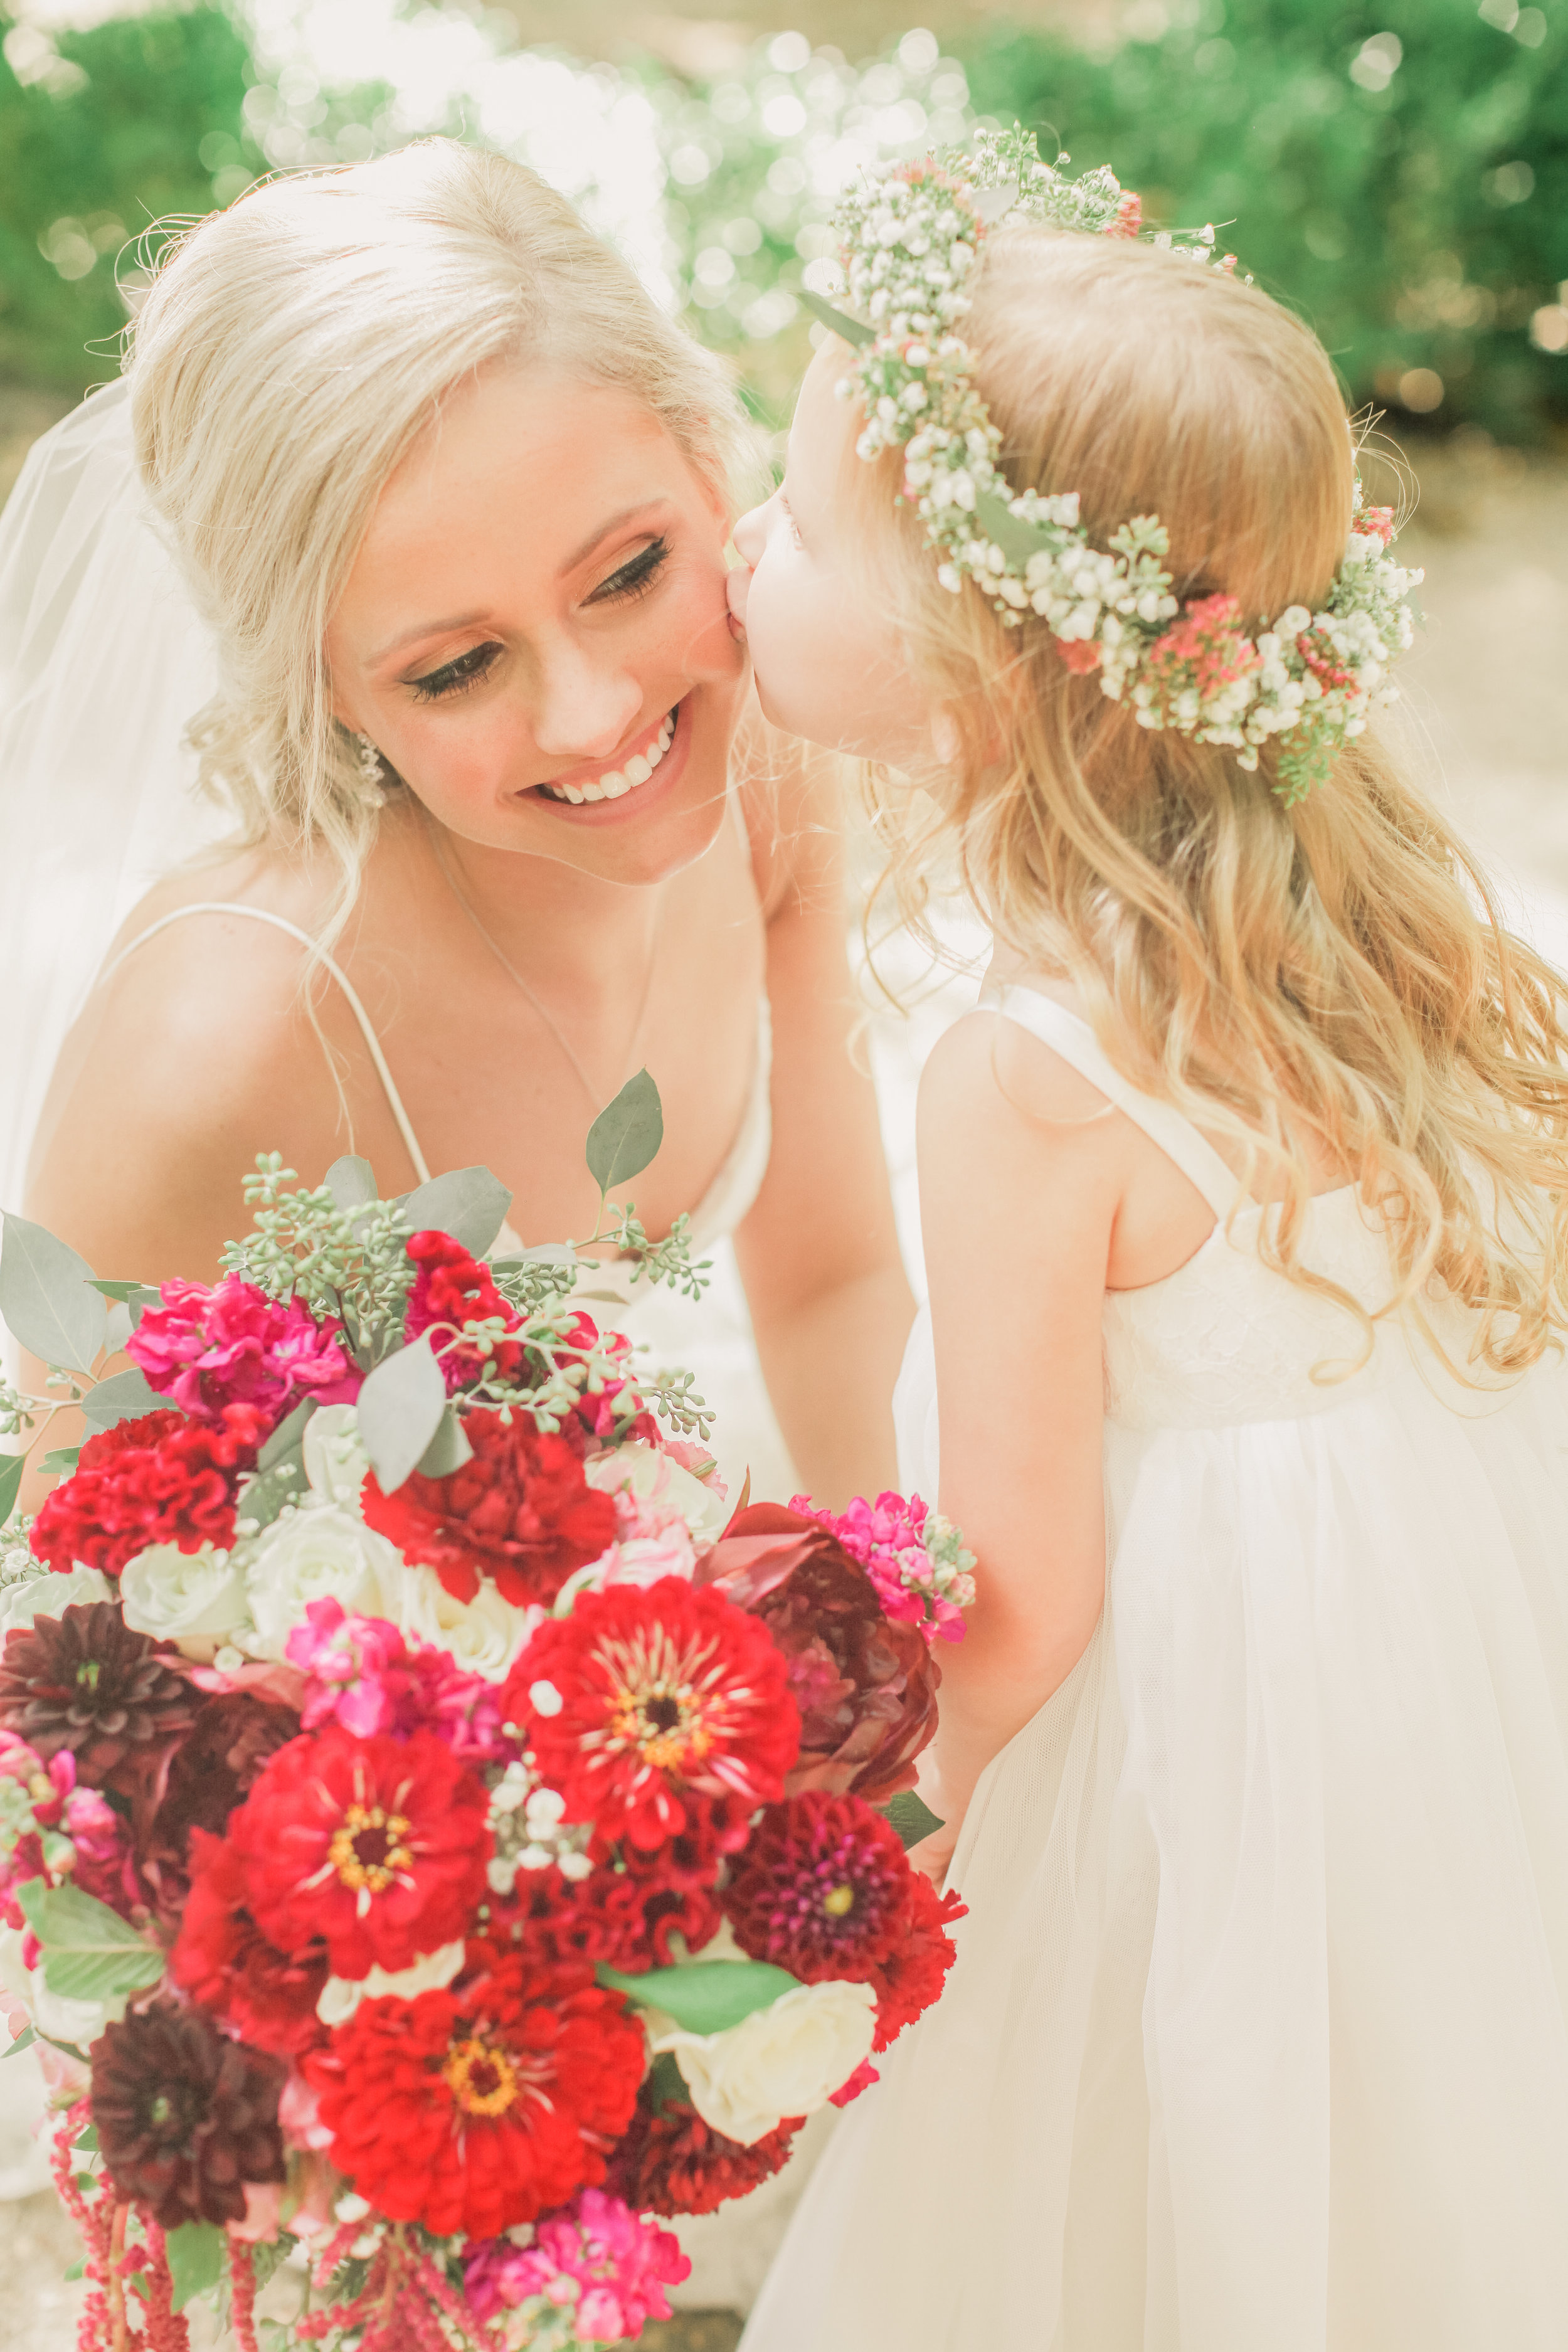 keaton + Lyndsey - Kellie did an amazing job with all of our photos. Our photos looked like they were out of a magazine. We absolutely loved them.We will definitely be using her in the future and recommend her to anyone who is looking for a great photographer!